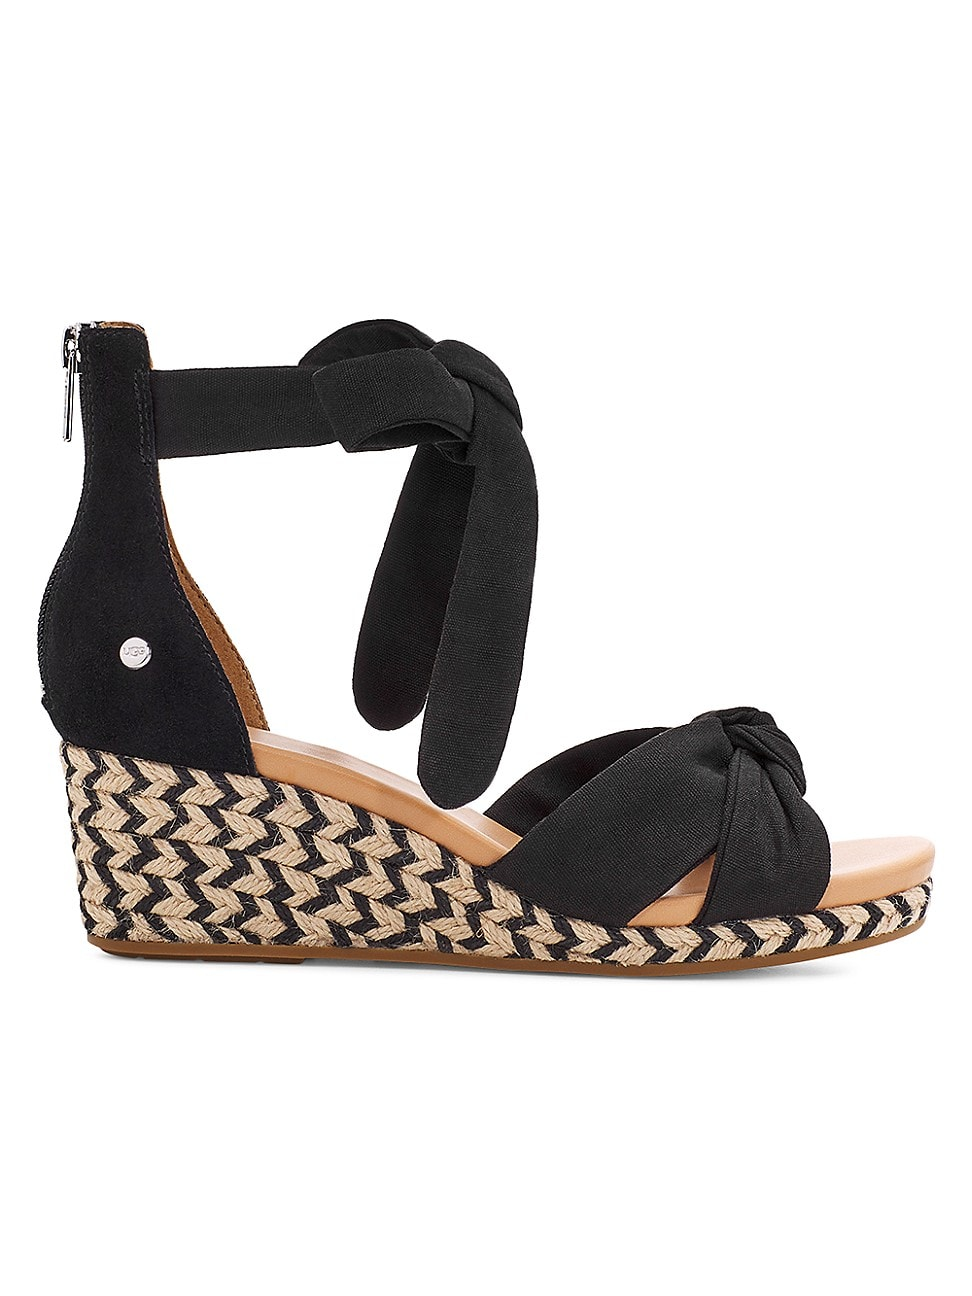 Ugg Wedges WOMEN'S YARROW SUEDE ESPADRILLE WEDGE SANDALS